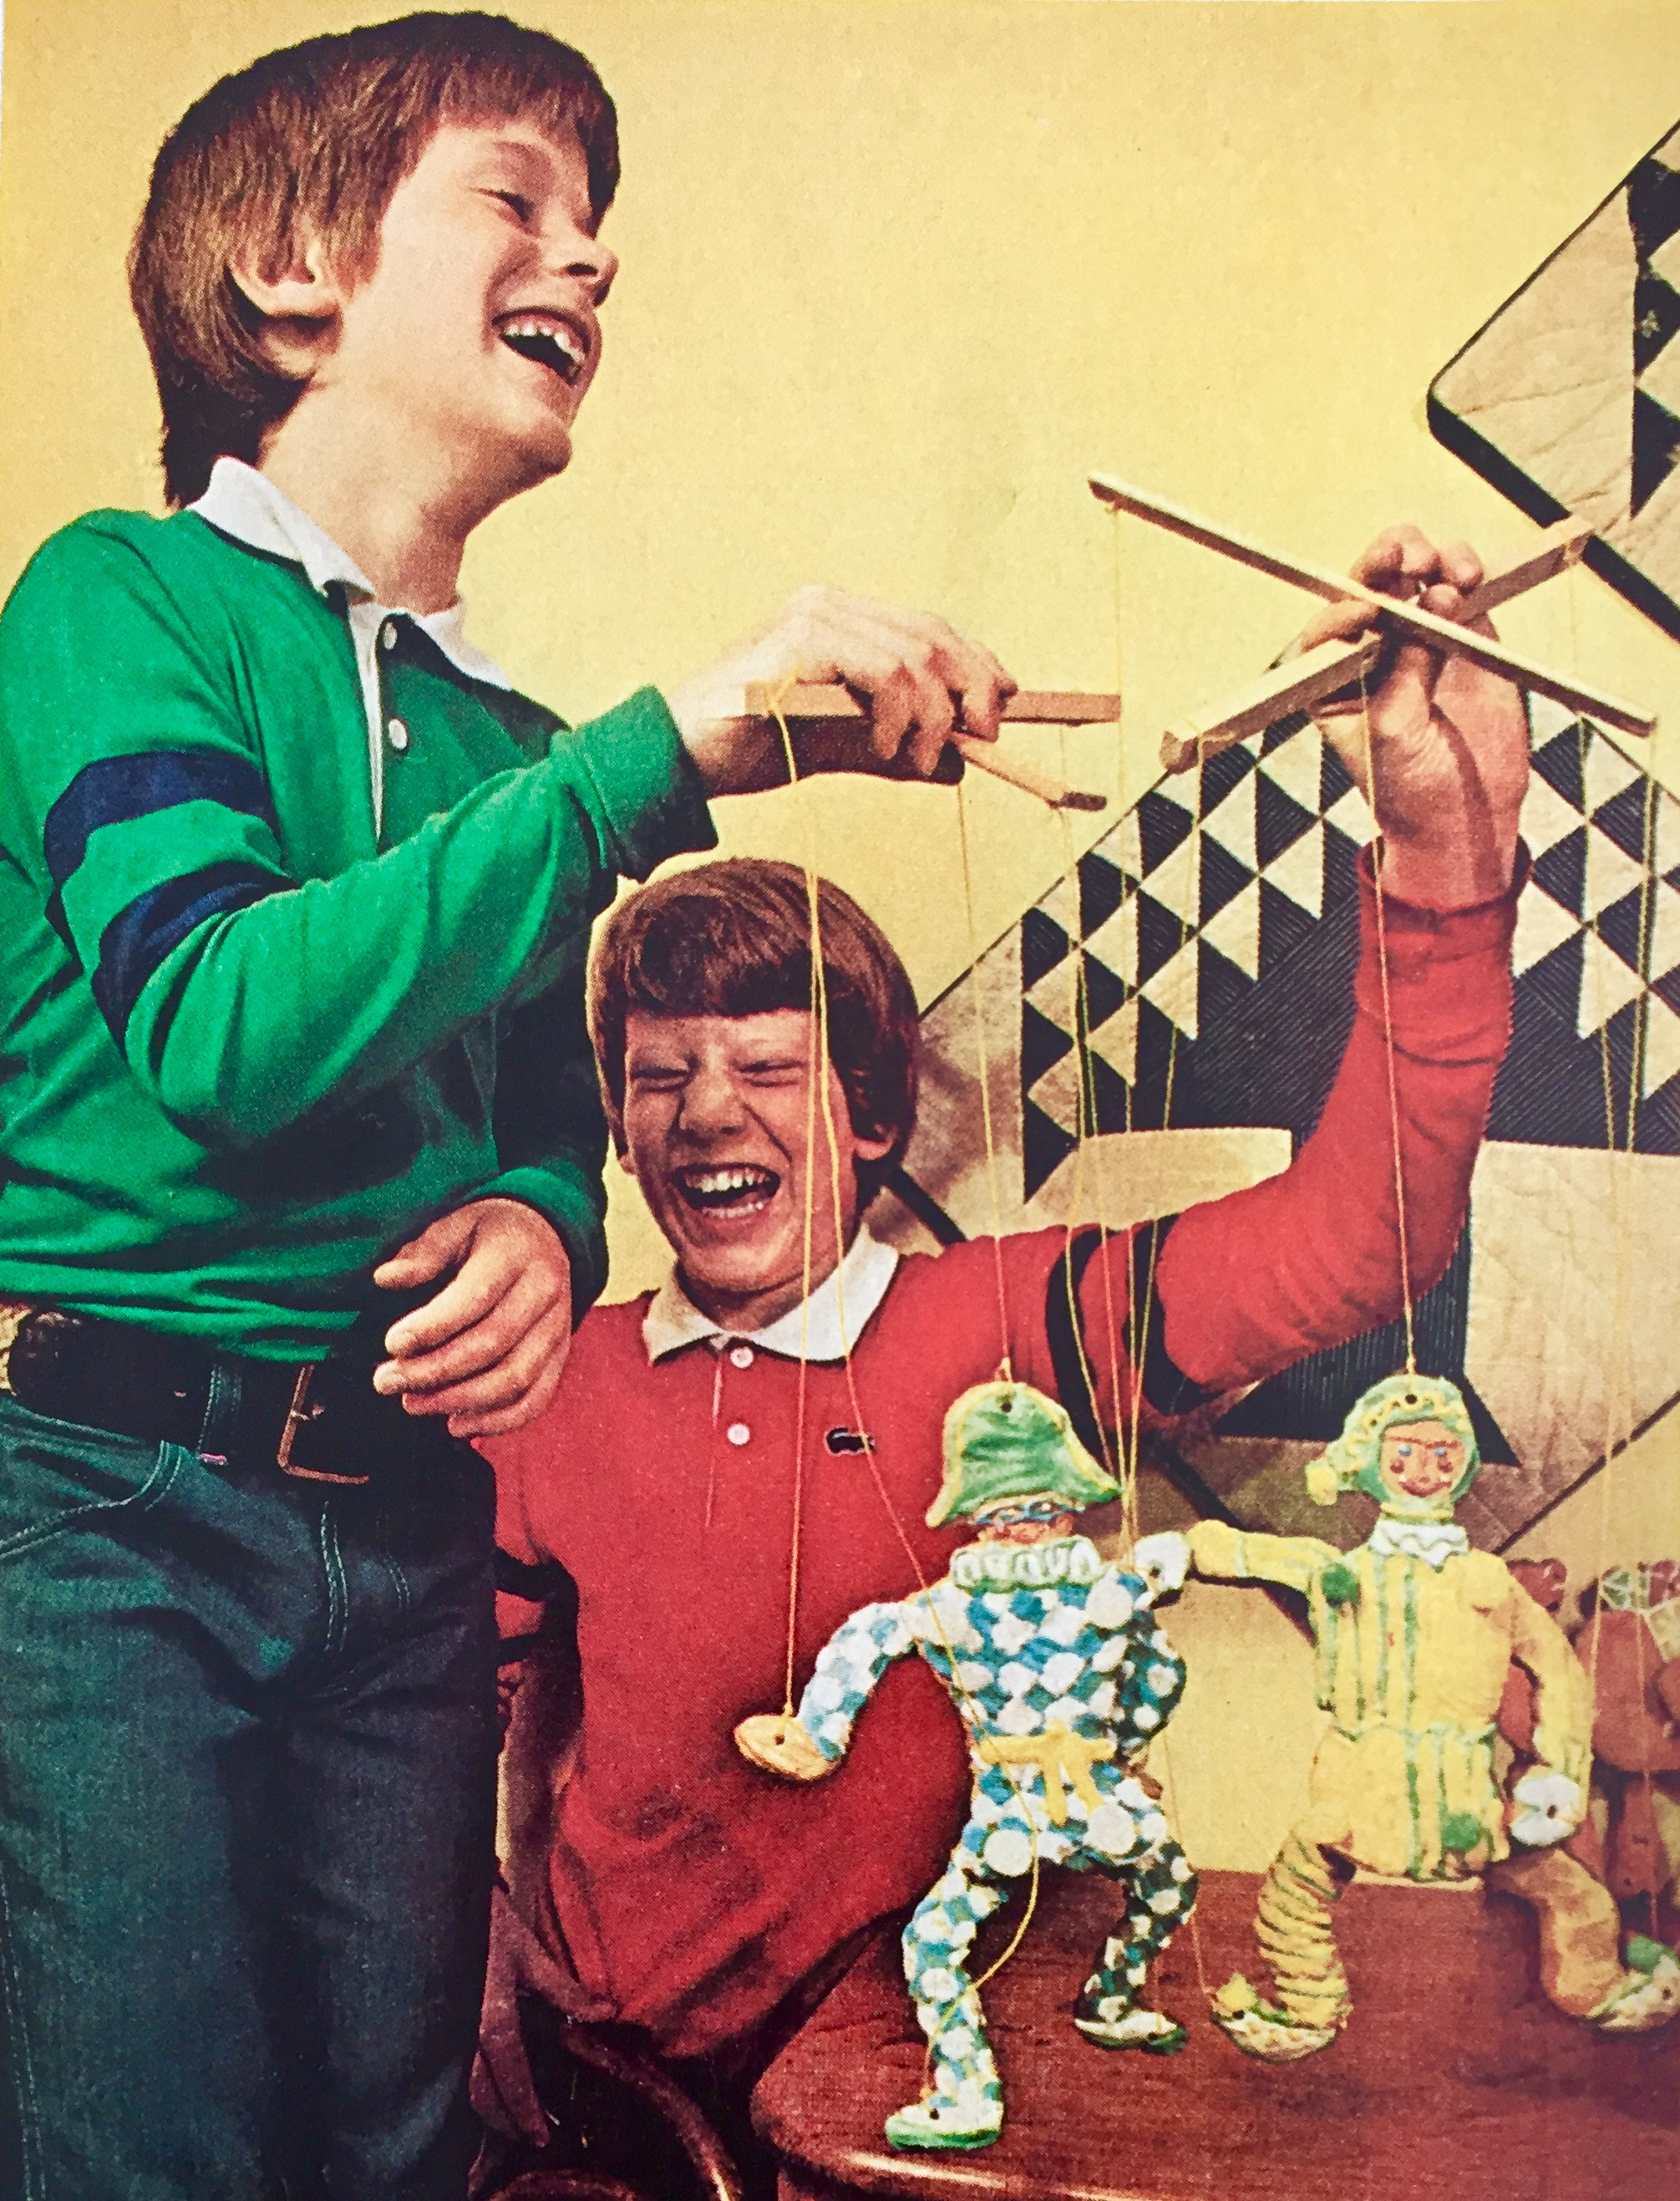 See, I told you growing up in the seventies was great. We didn't need fidget spinners or video games. Look how much giddy fun we could have with puppets.